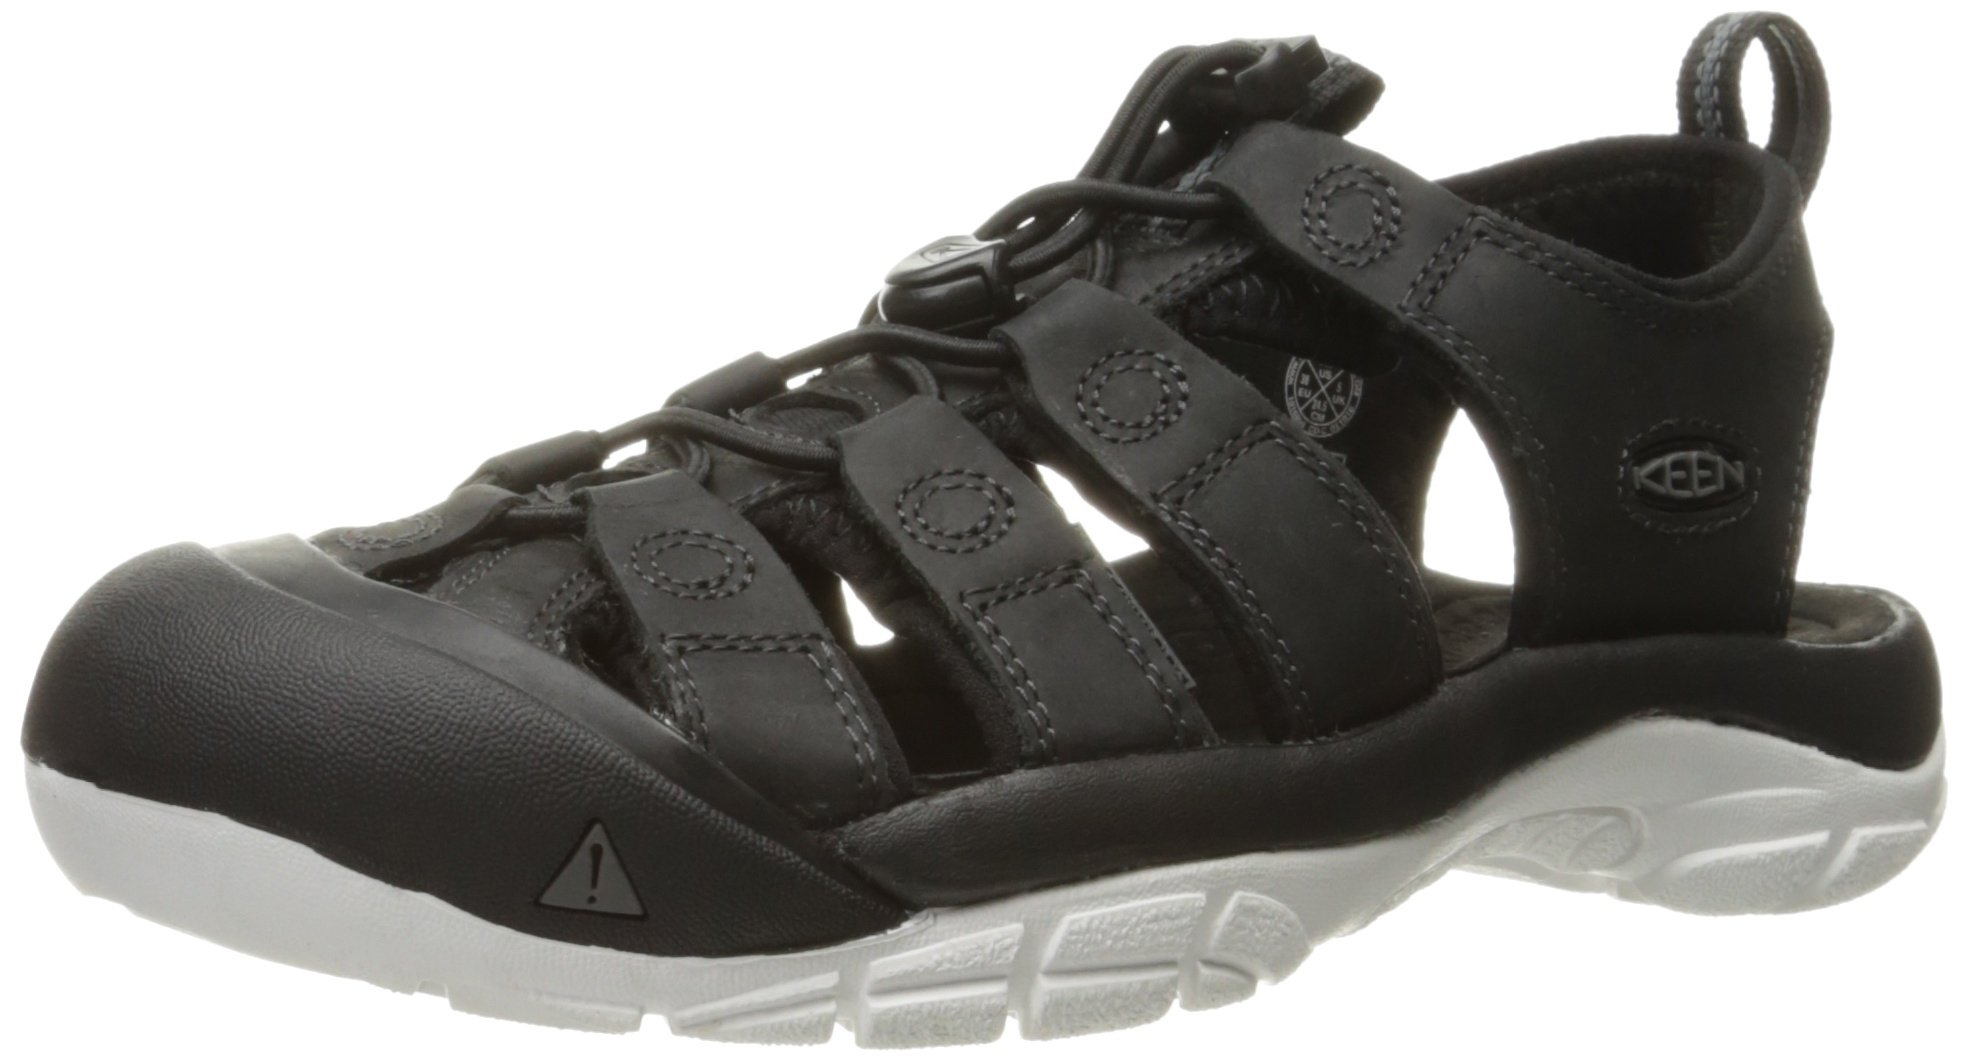 KEEN Women's Newport ATV Hiking Sandal, Black/Star White, 9 M US